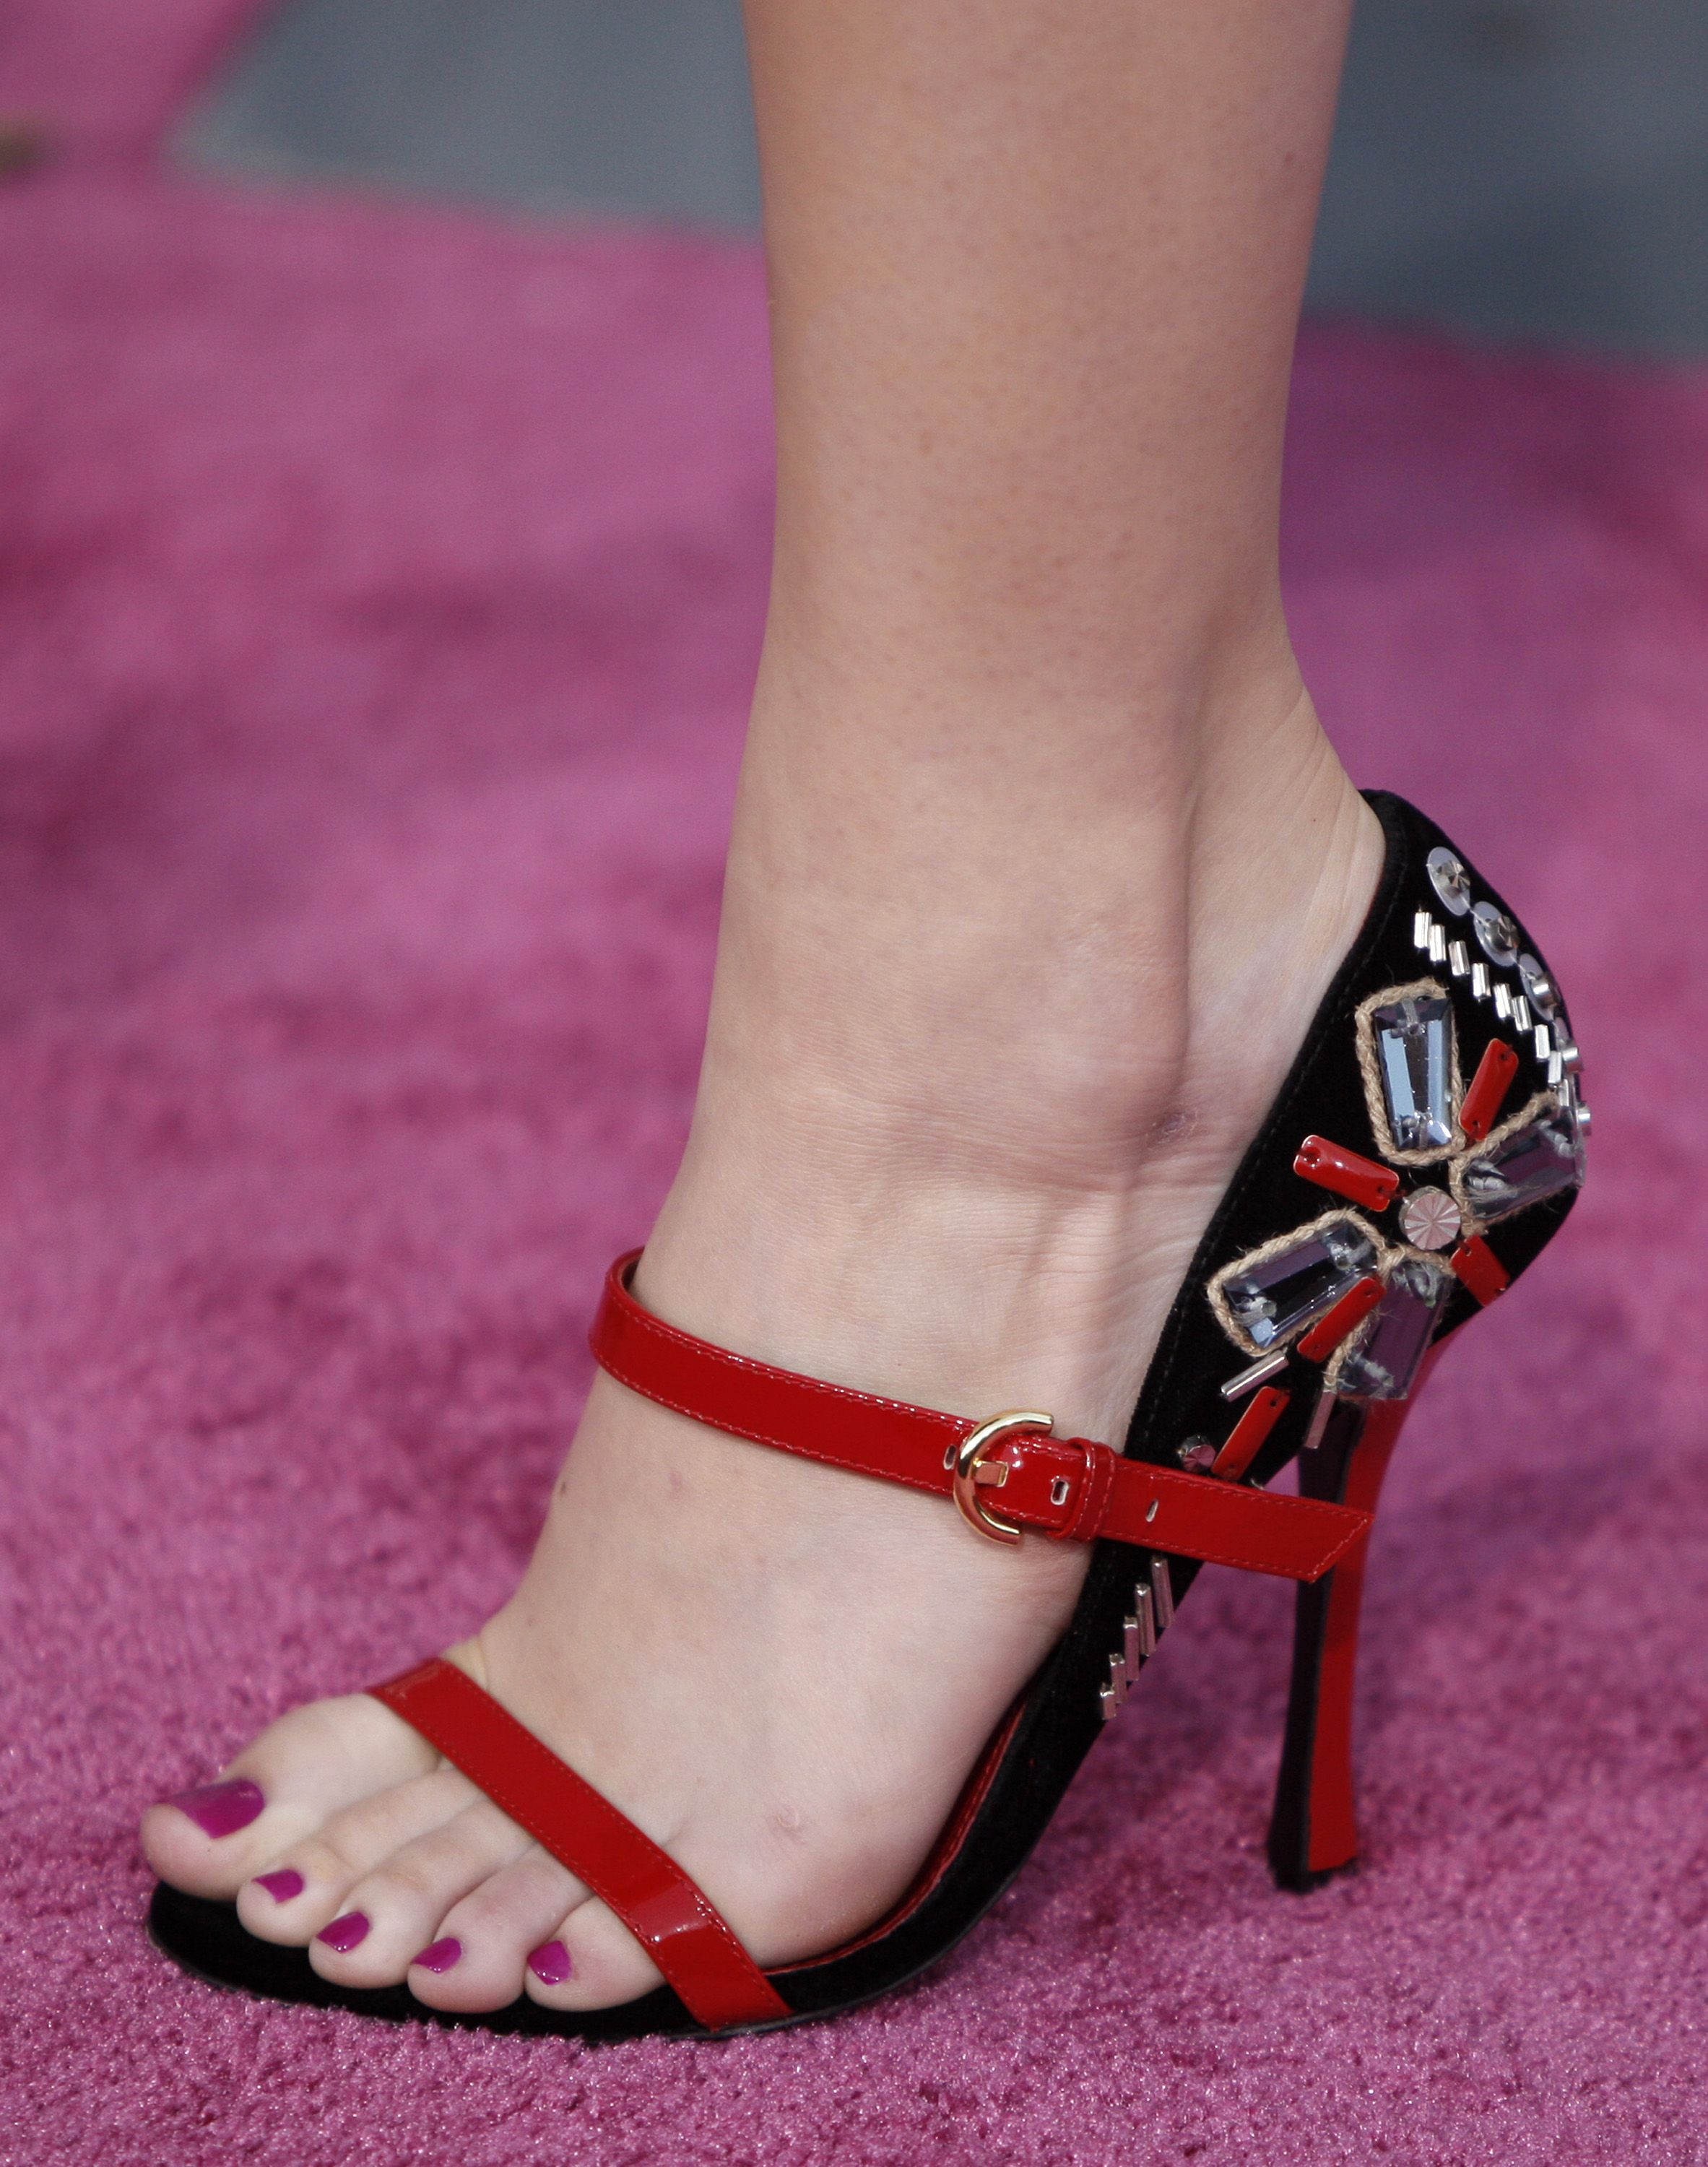 Emma-stone-feet Perfect Shoes